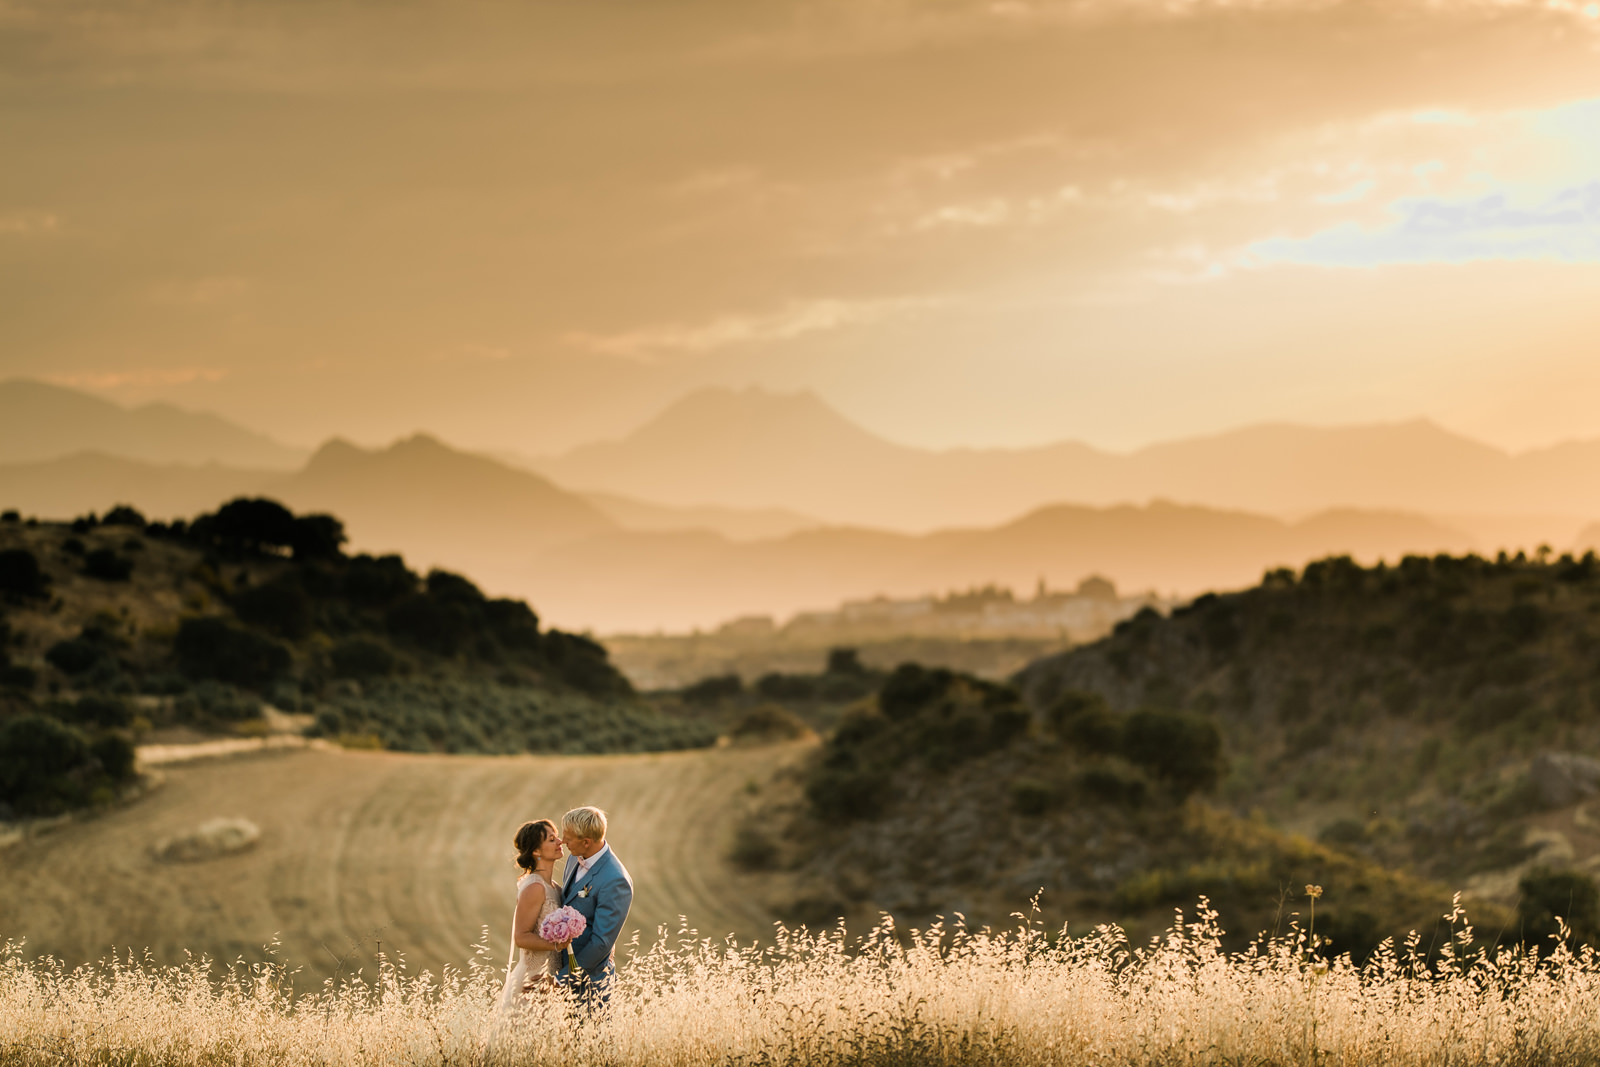 Bride and Groom on a Spanish cornfield mountains behind during golden hour near Ronda